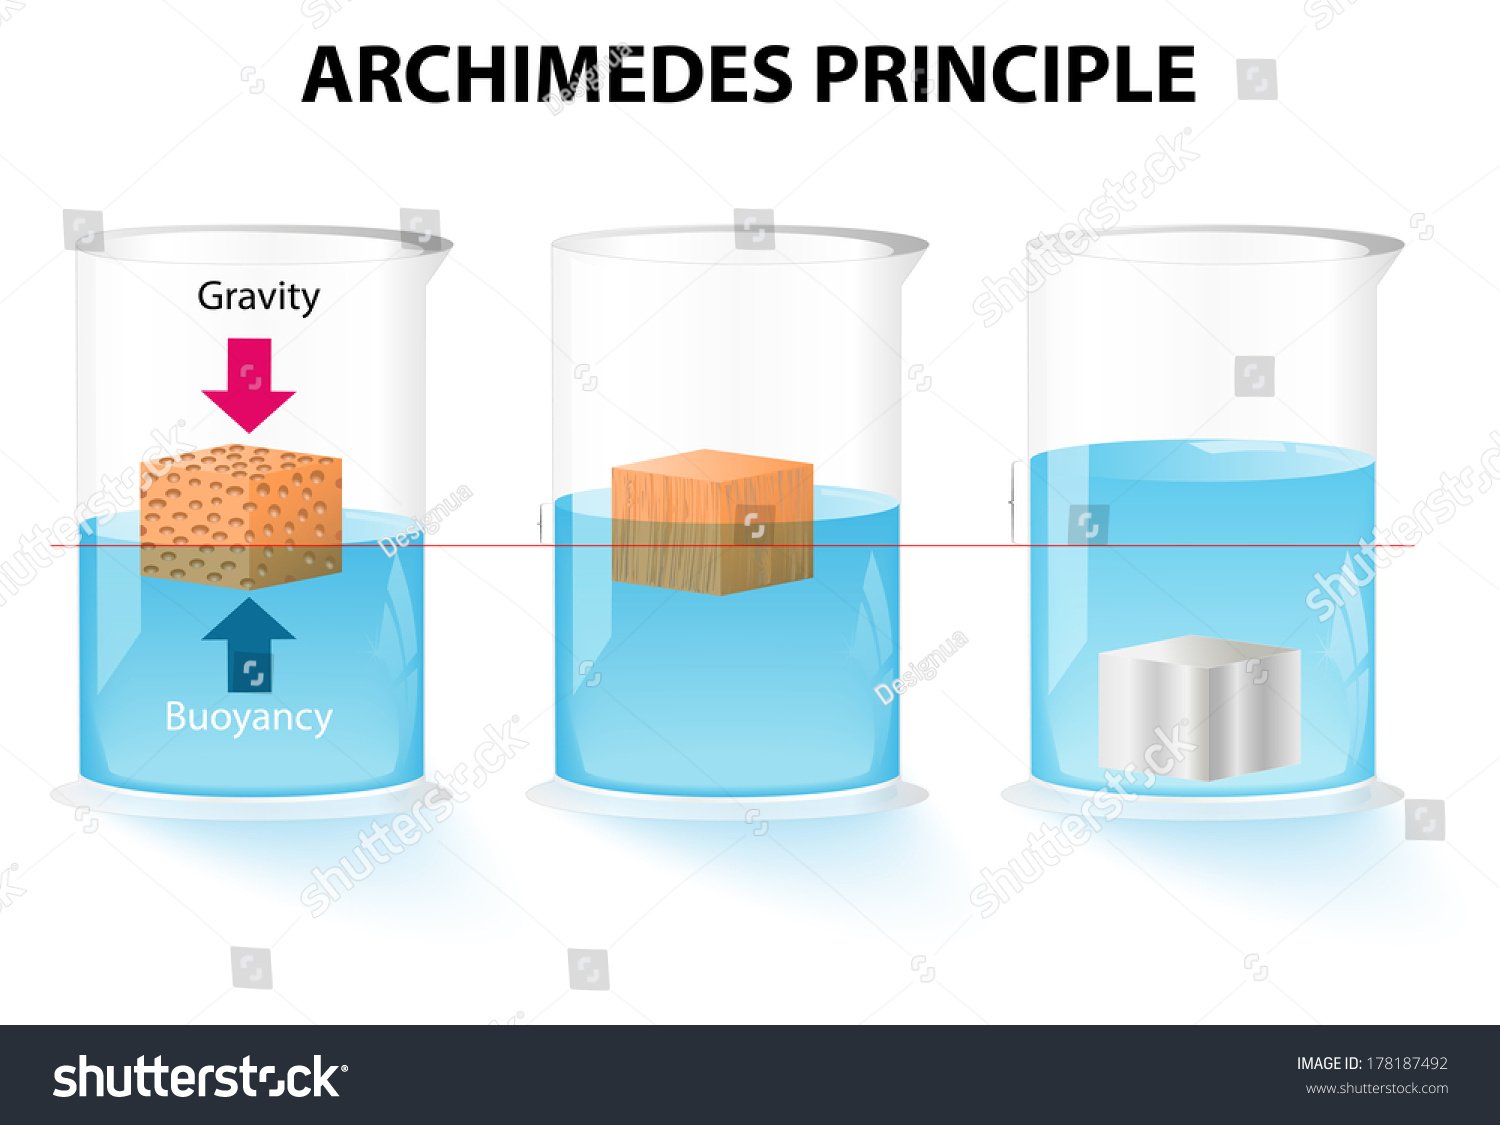 buoyancy and object How does an object's buoyancy change from fresh water to salt water why is an object more buoyant in freshwater vs saltwater.